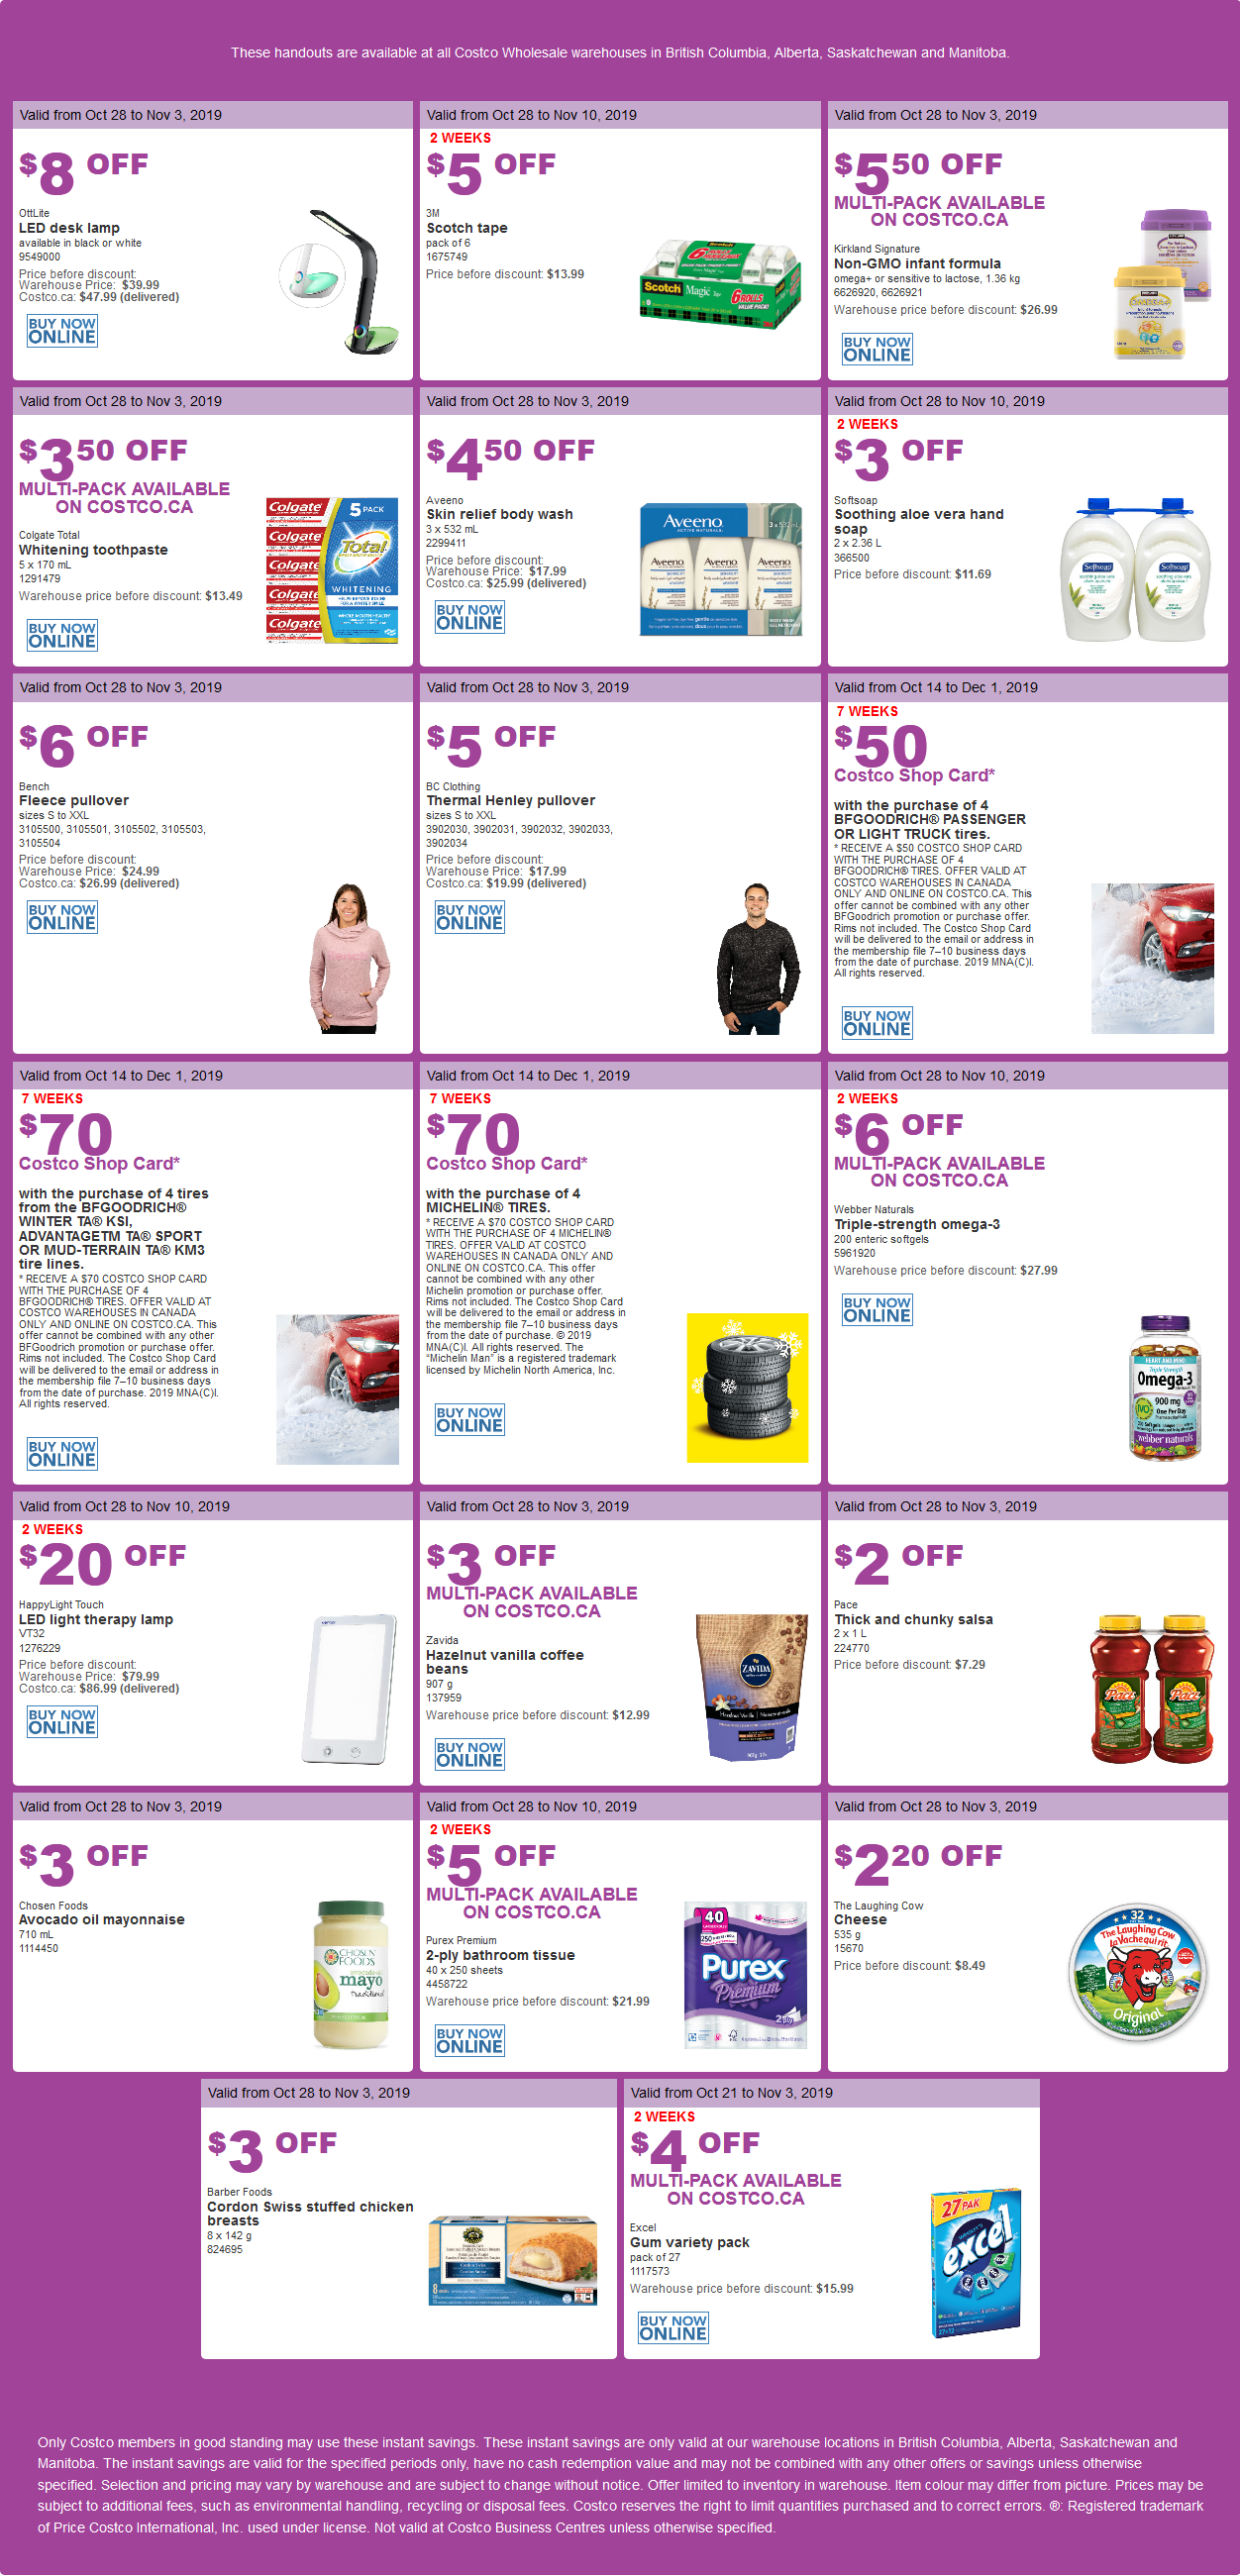 Costco Flyer for Oct 28 - Nov 3, 2019 for BC, AB, SK, MB